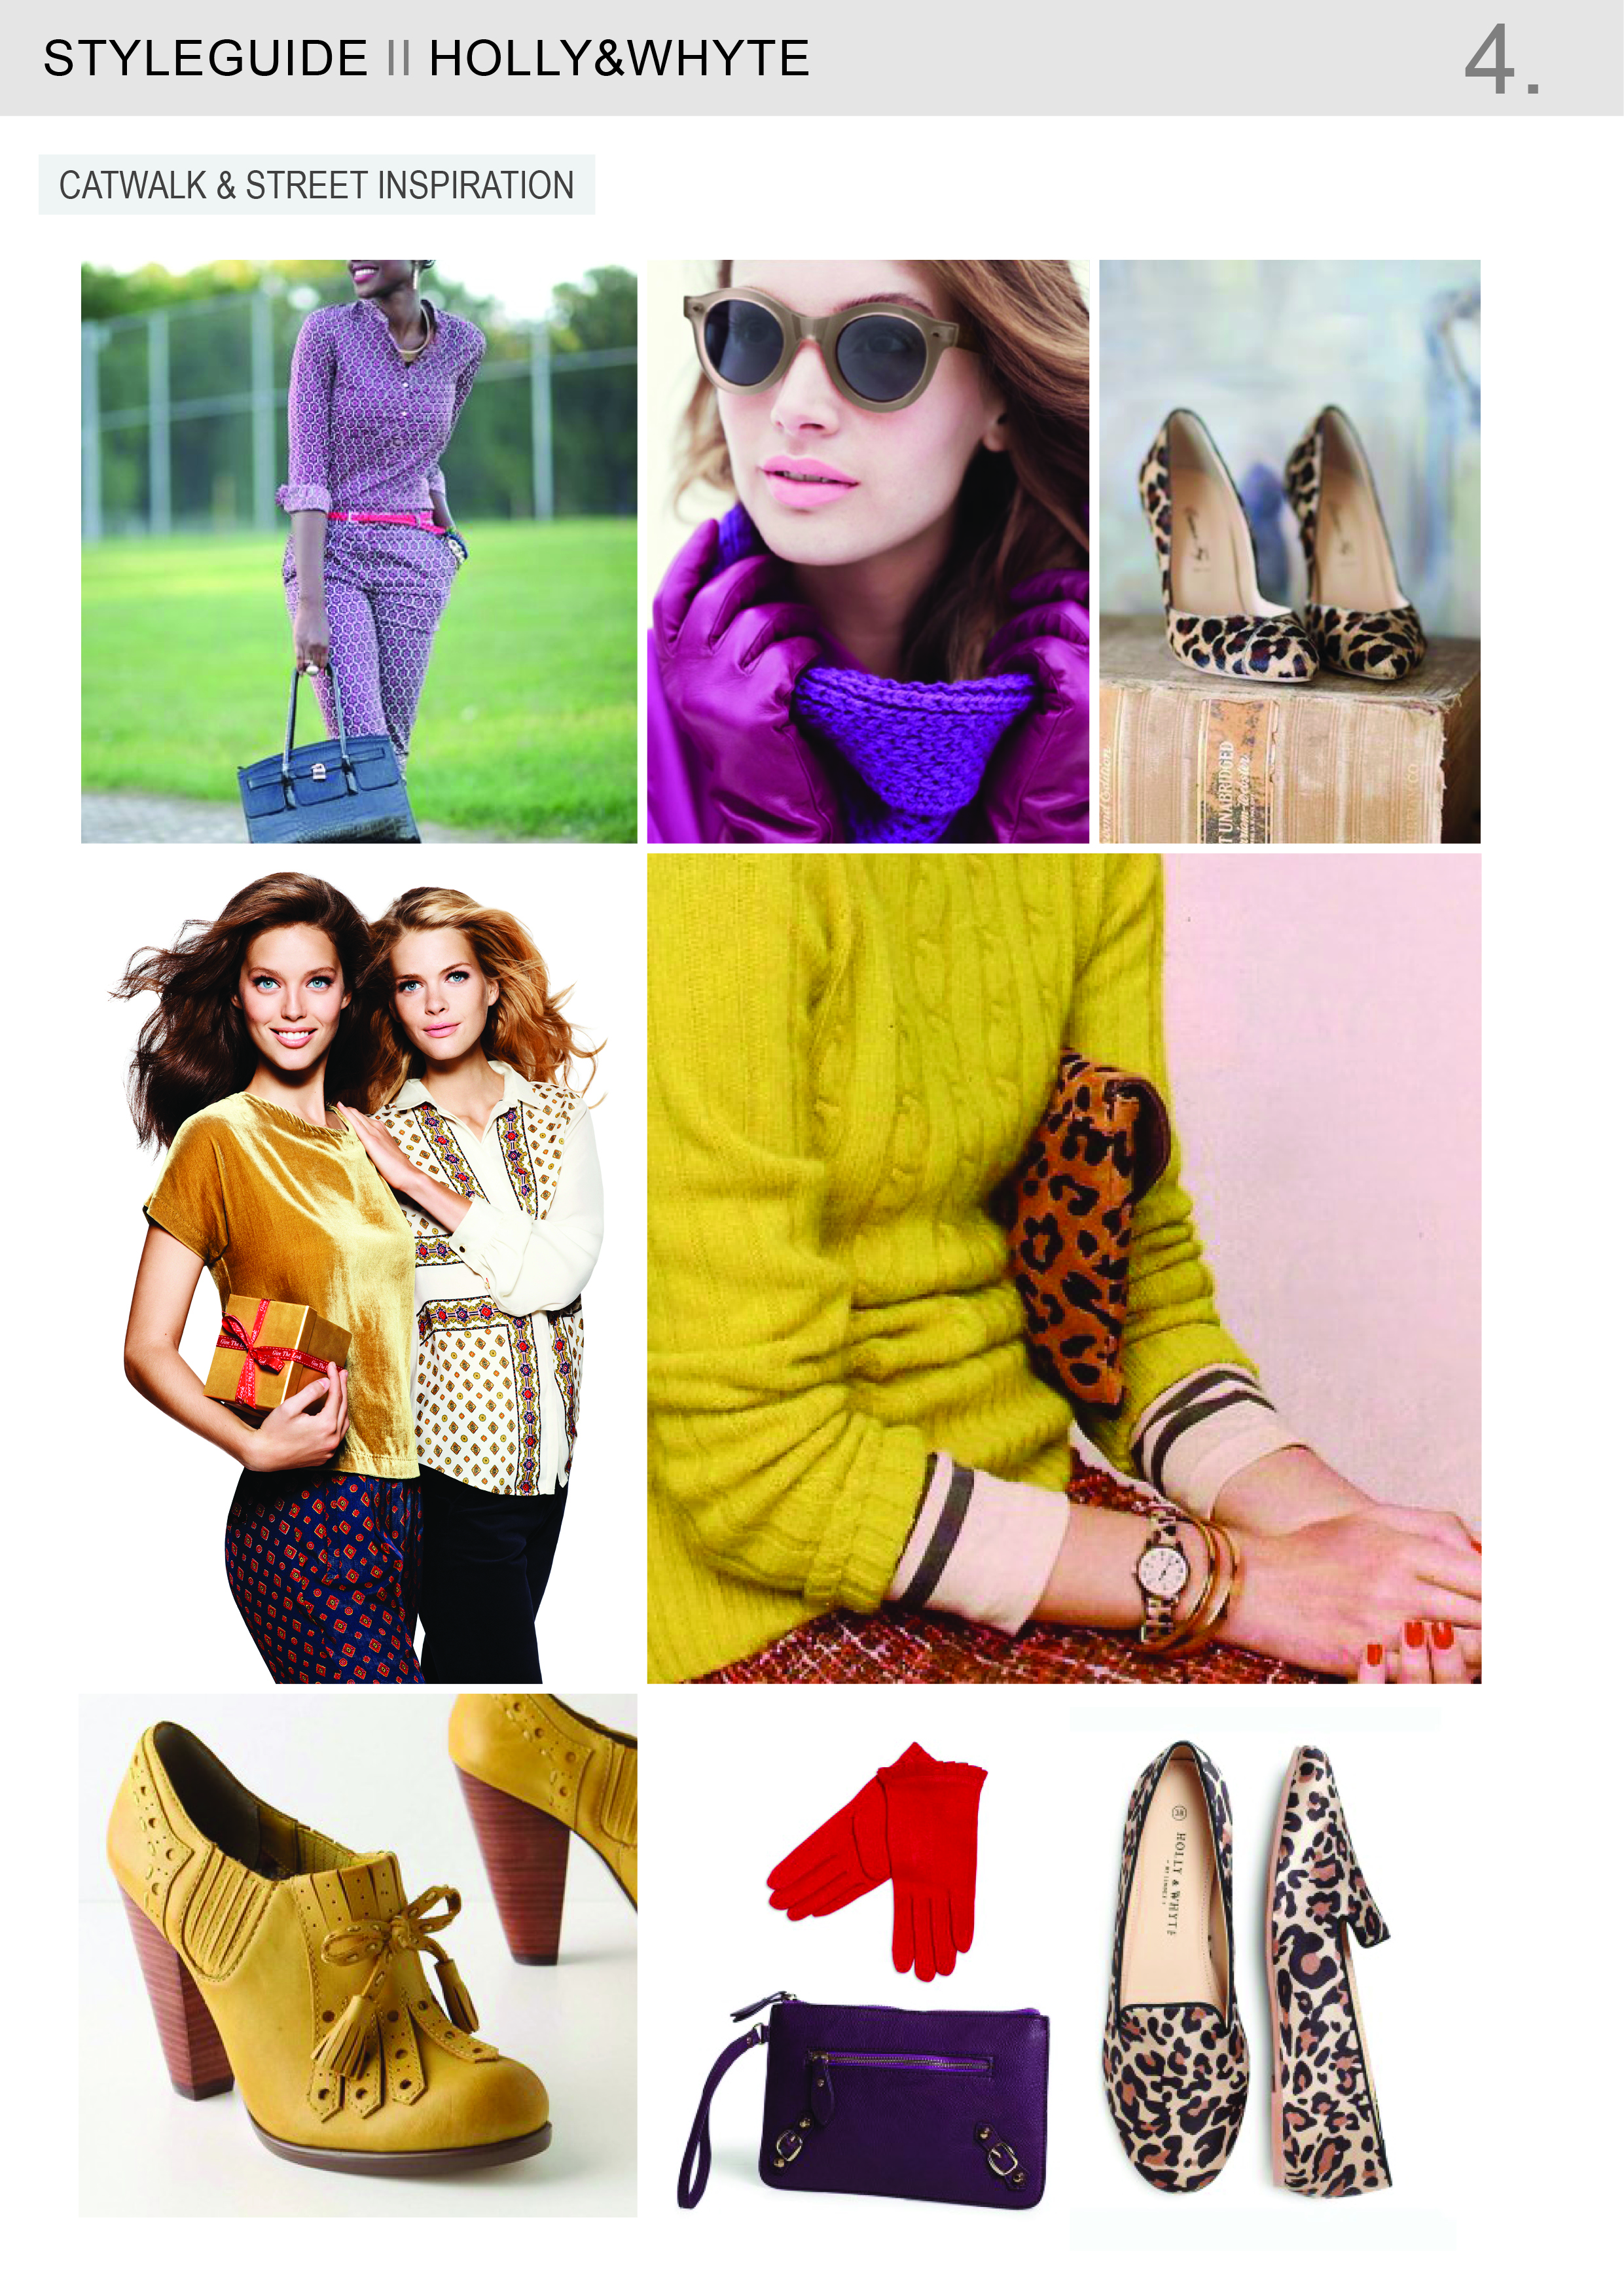 Lindex_Style Guide_Holly & Whyte_11-8-20154.jpg